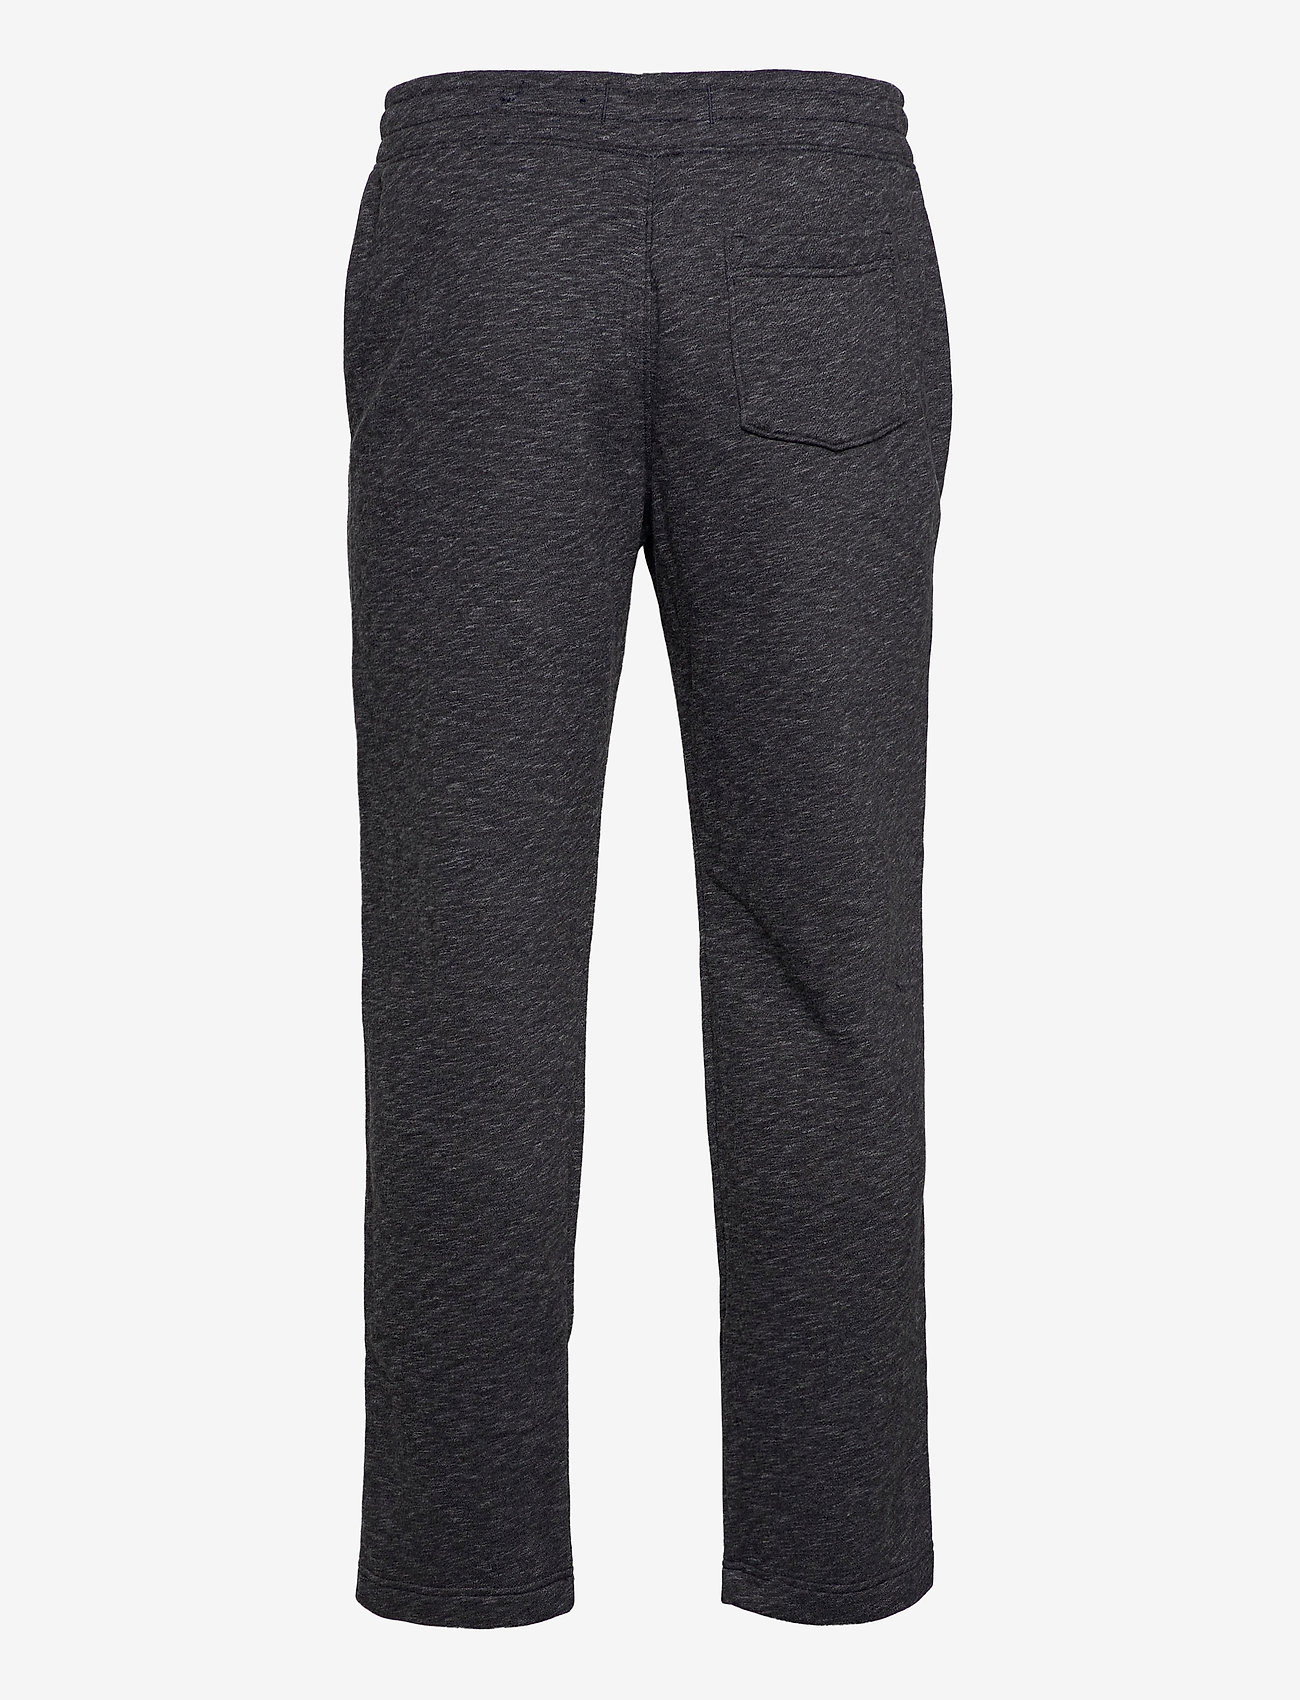 Straight Leg Sweatpants (Black Sd/texture) (37.80 €) - Hollister SlVmH